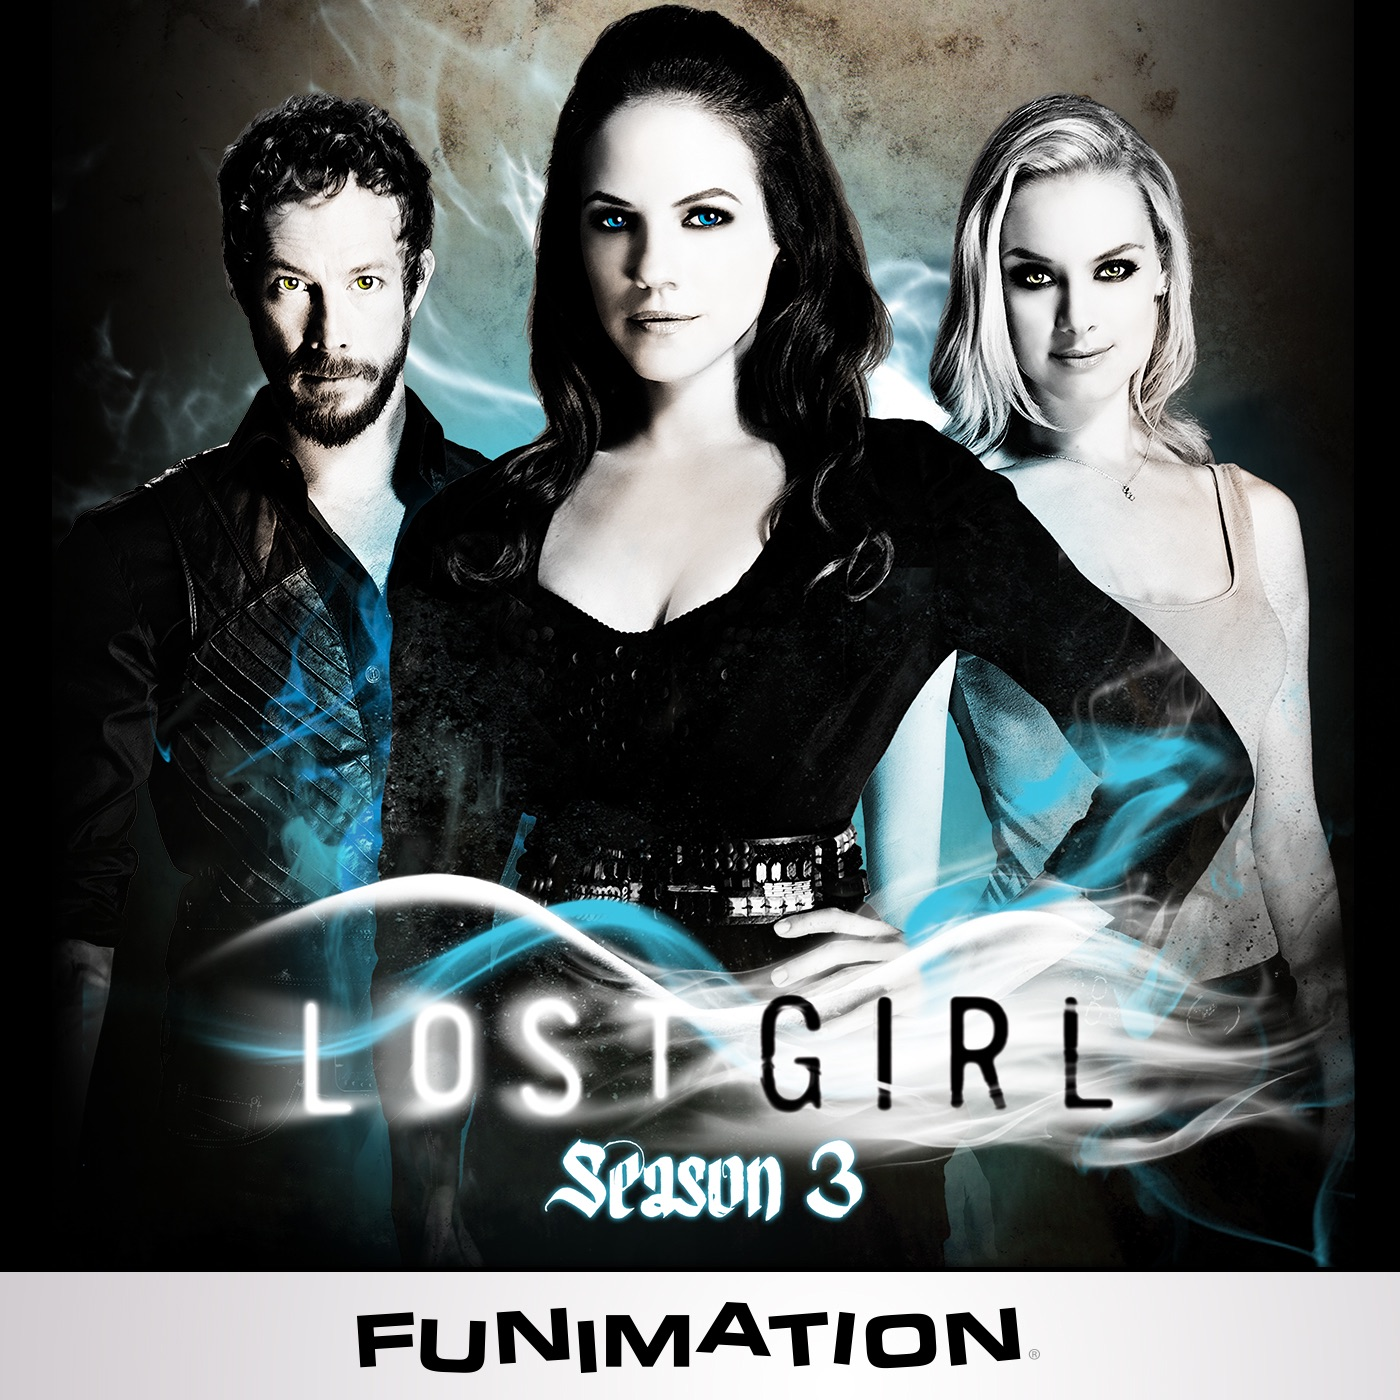 Soundtrack lost girl season 3 / Imdb party down south